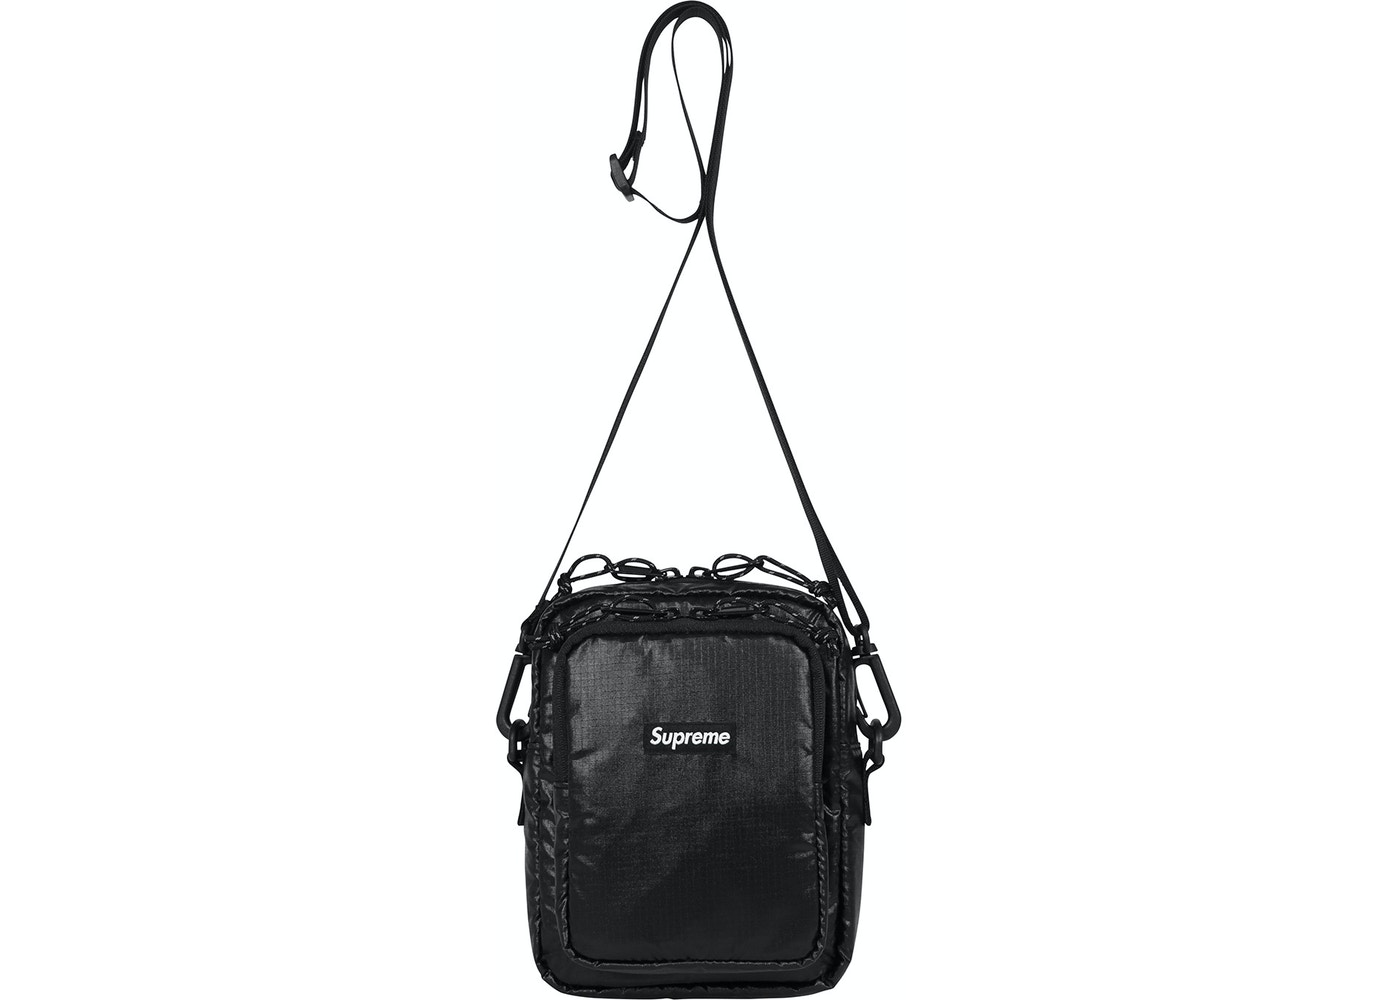 Supreme Shoulder Bag Black - FW17 780f3a89109bd